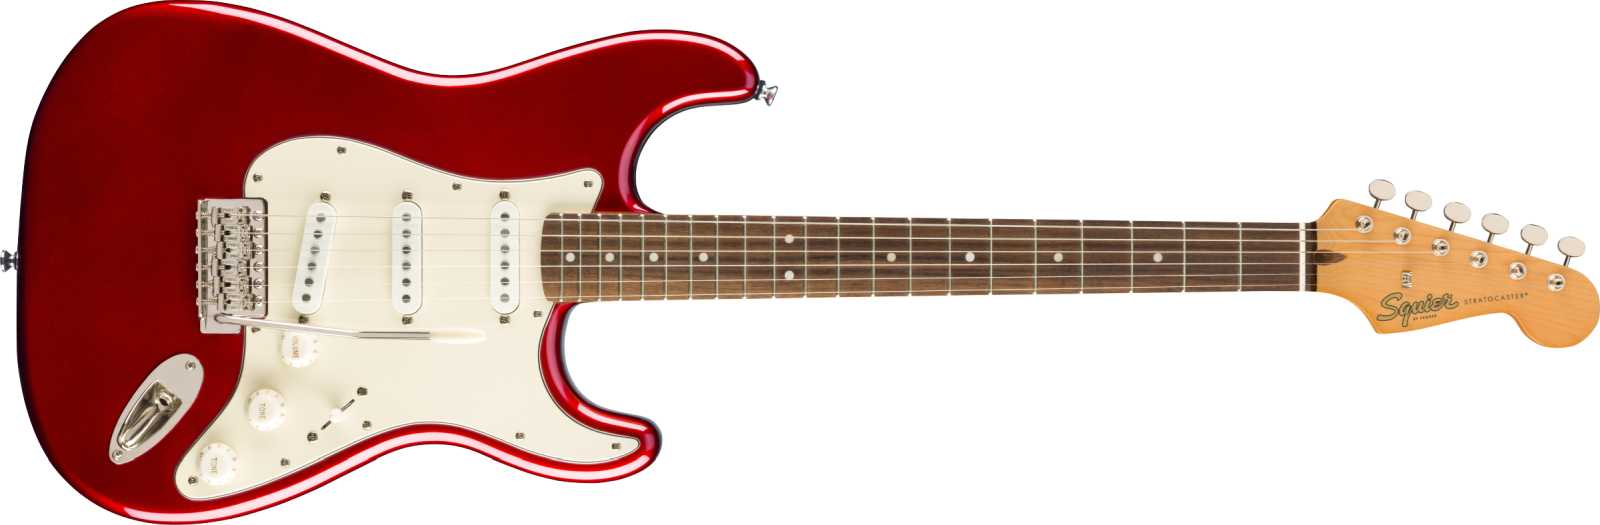 Squier Classic Vibe 60s Stratocaster LRL CAR